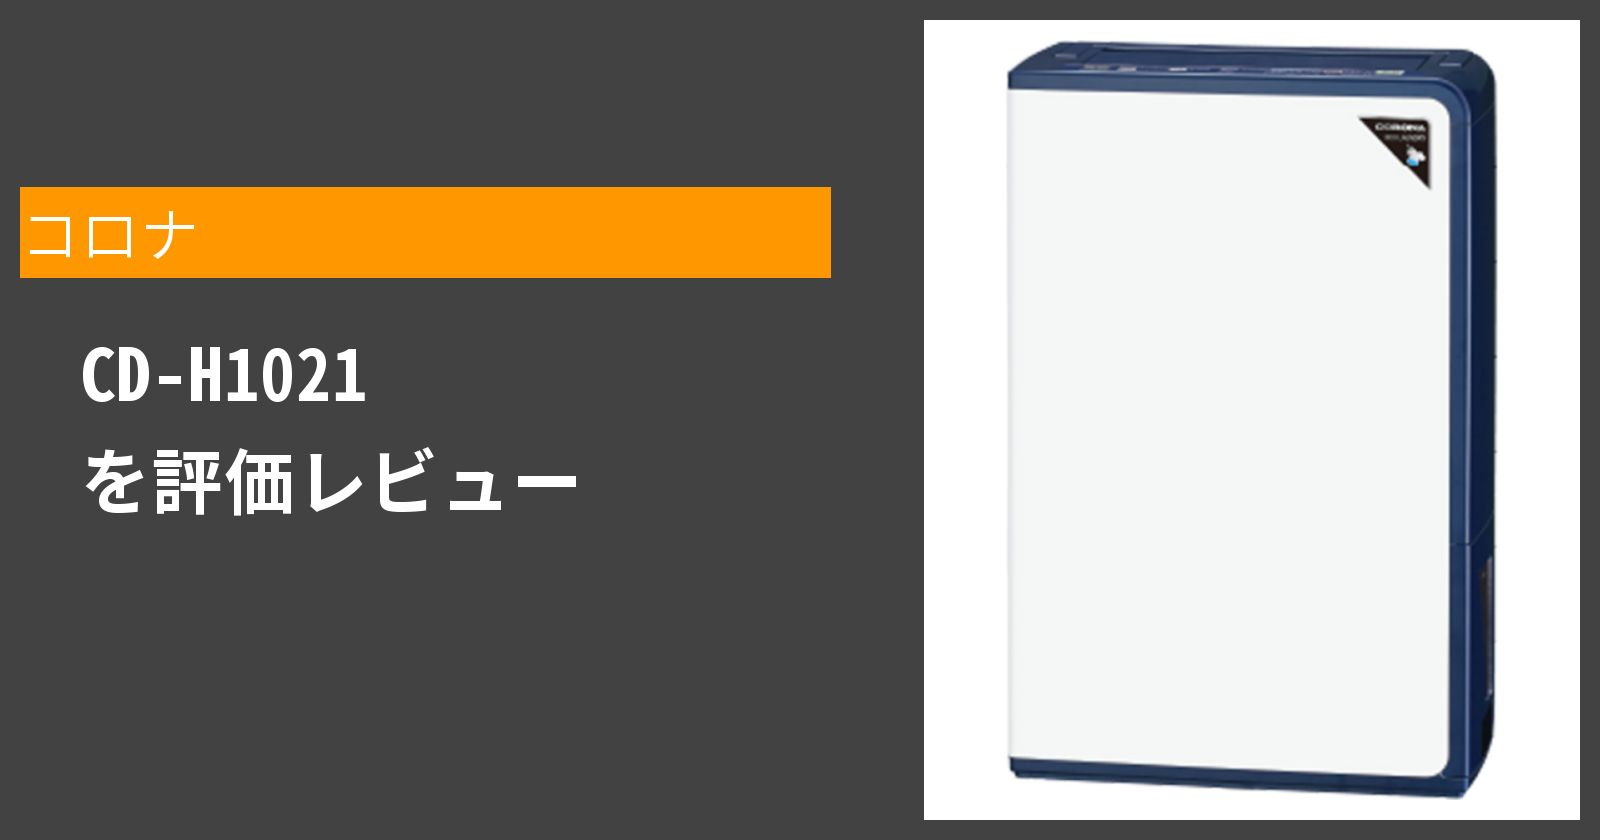 CD-H1021を徹底評価